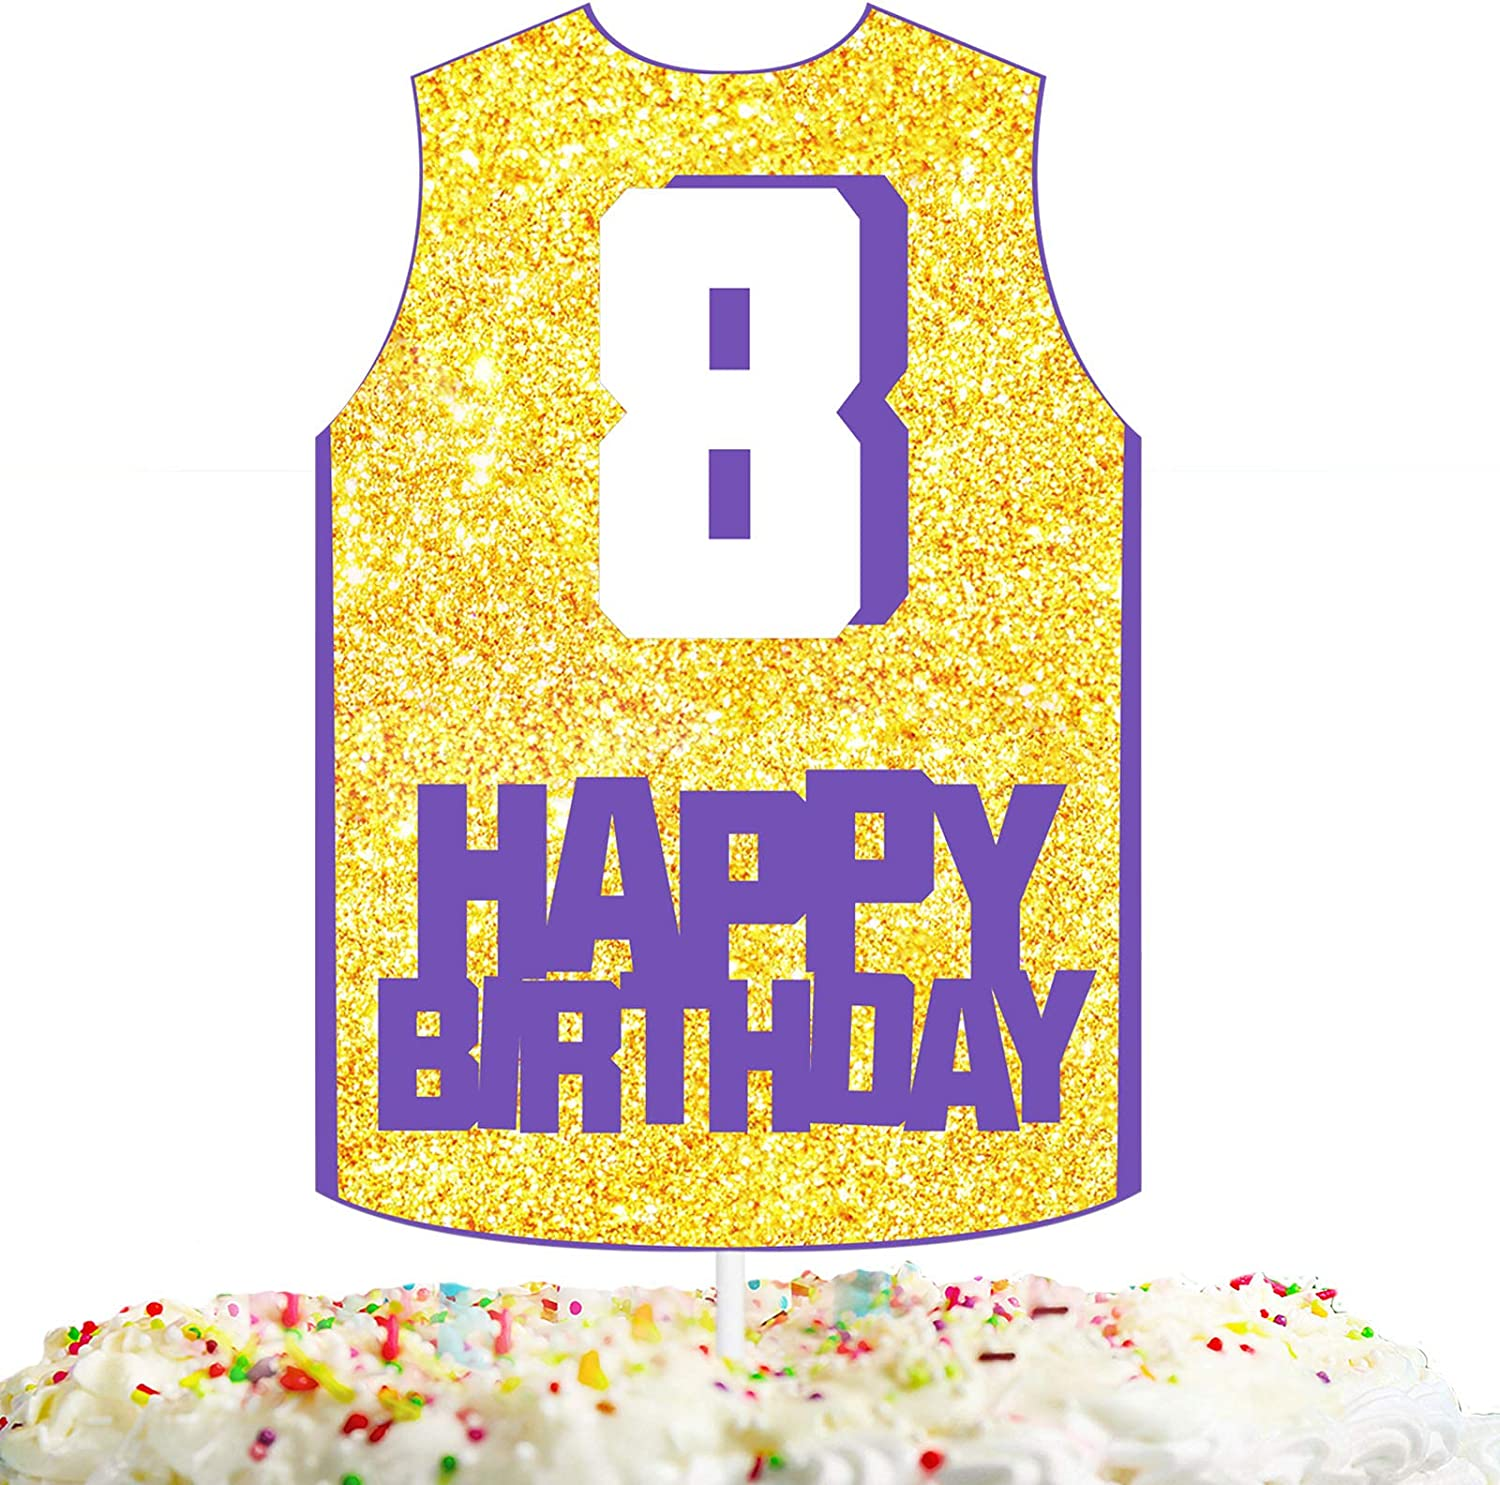 Happy 8th Birthday Cake Topper Basketball Theme Kids Party Decor Picks for 8 years old Birthday Decorations Supplies